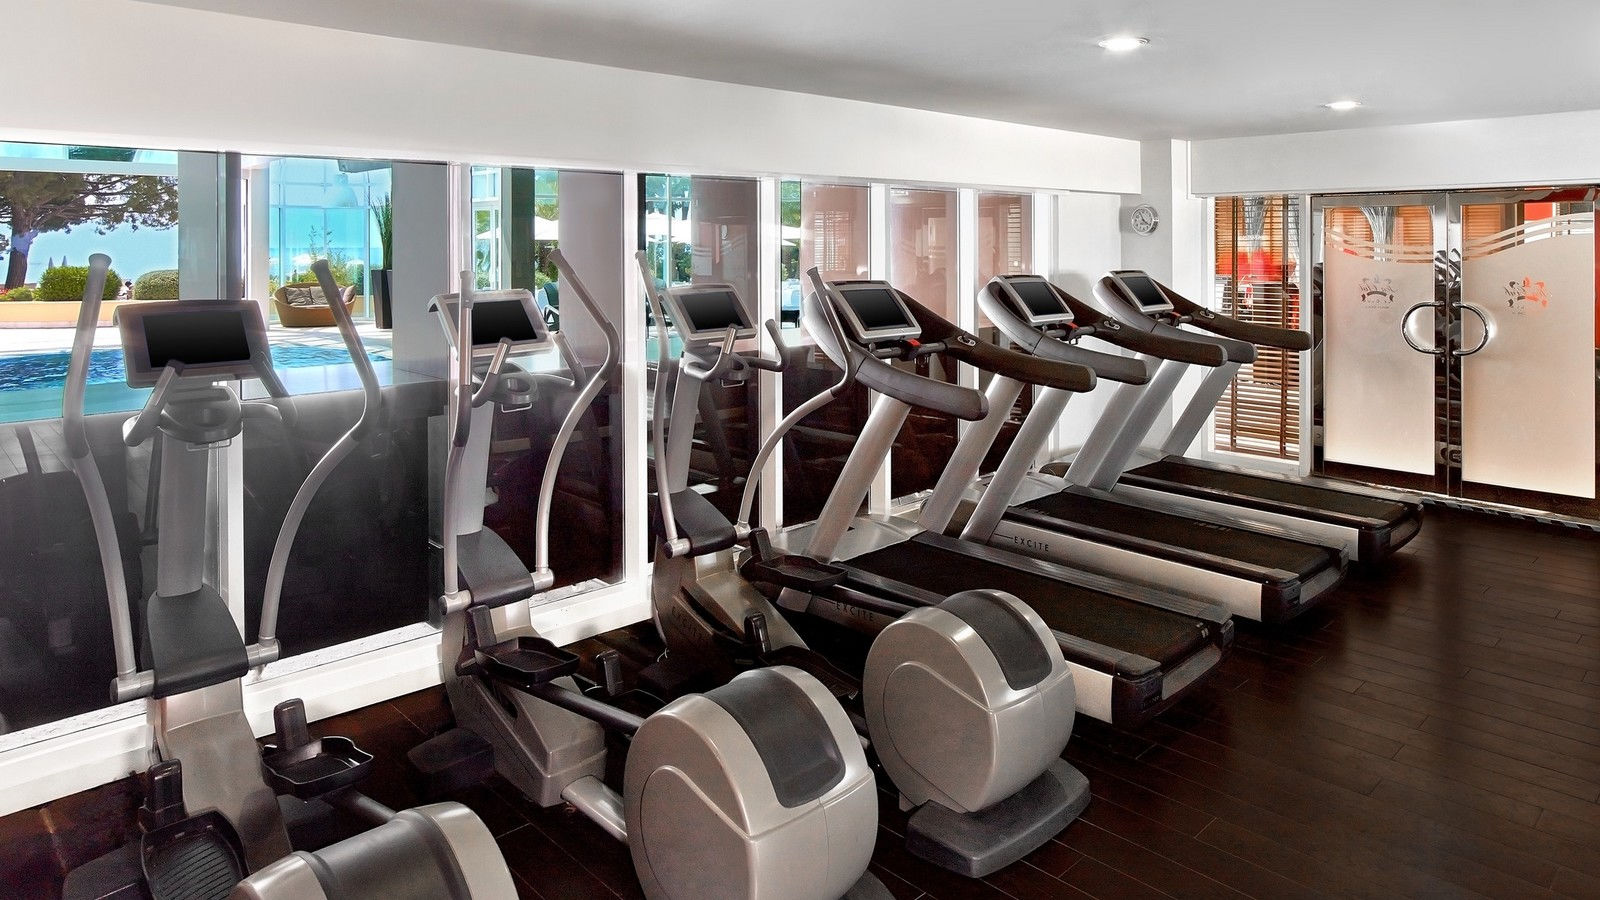 Sea Club Fitness centre - Le Méridien Beach Plaza